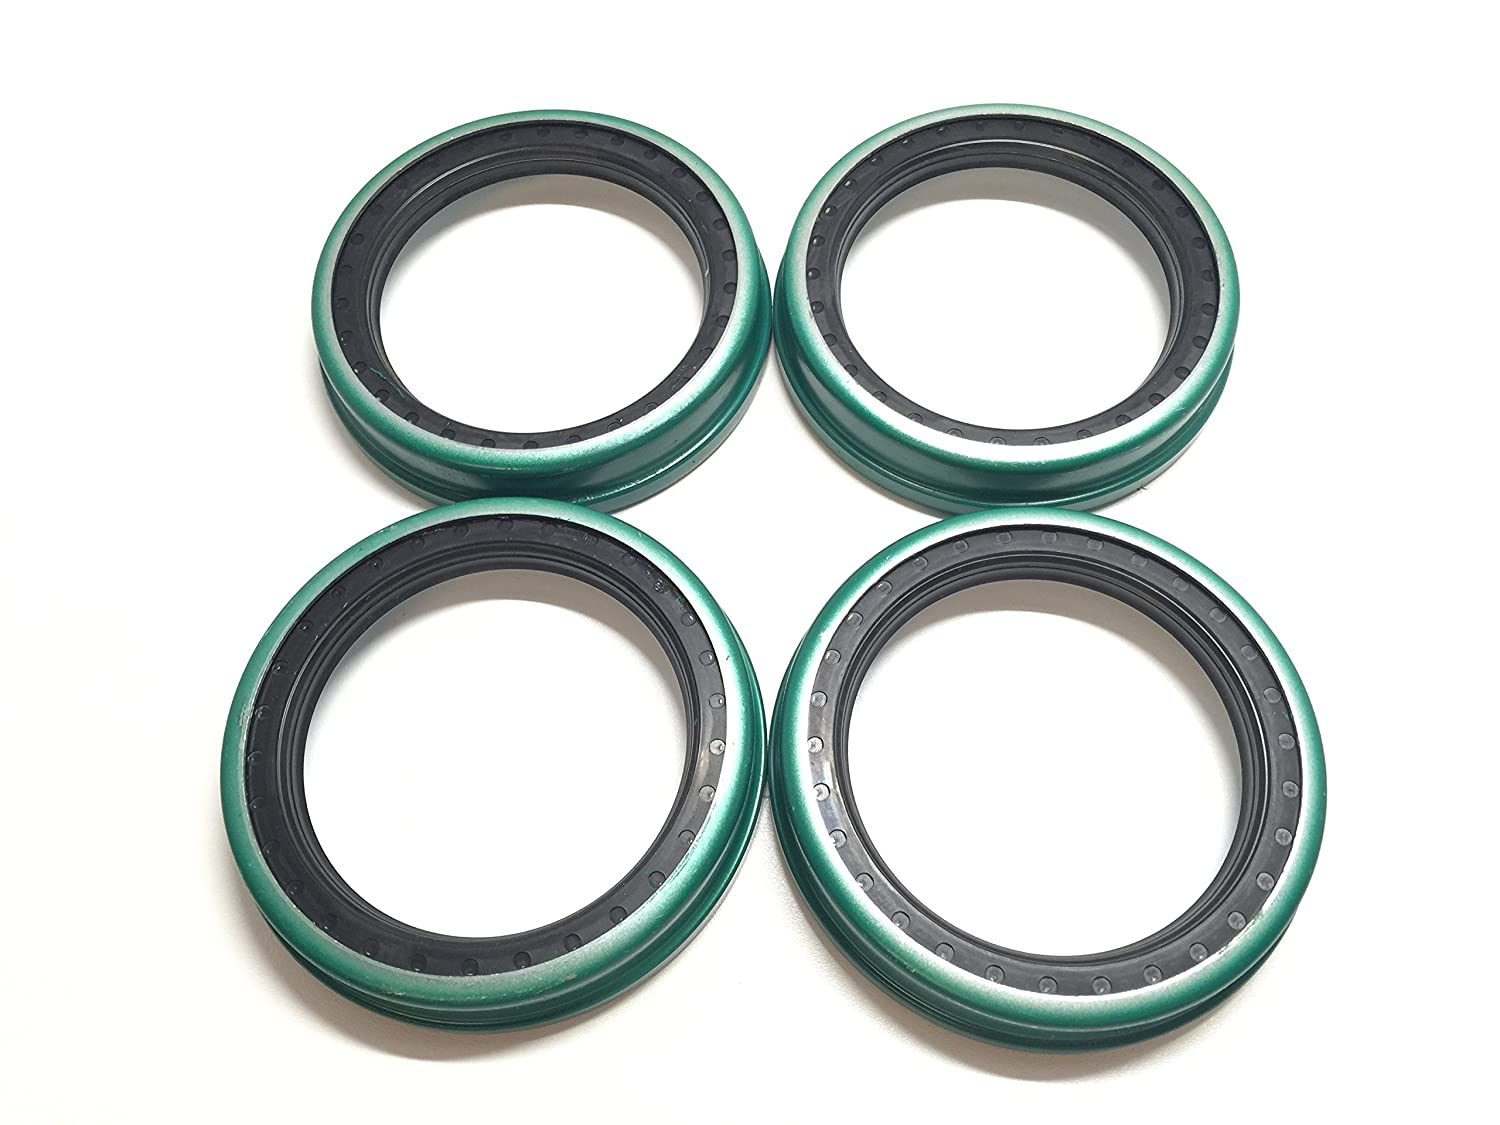 (Pack of 4) Trailer Wheel Unitized Oil Seals WPS (TM) CR27438 91030 Hayes #99 Spindle I.D. 2.750'' for 9K-10K lb. Axles Western CR27438/91030